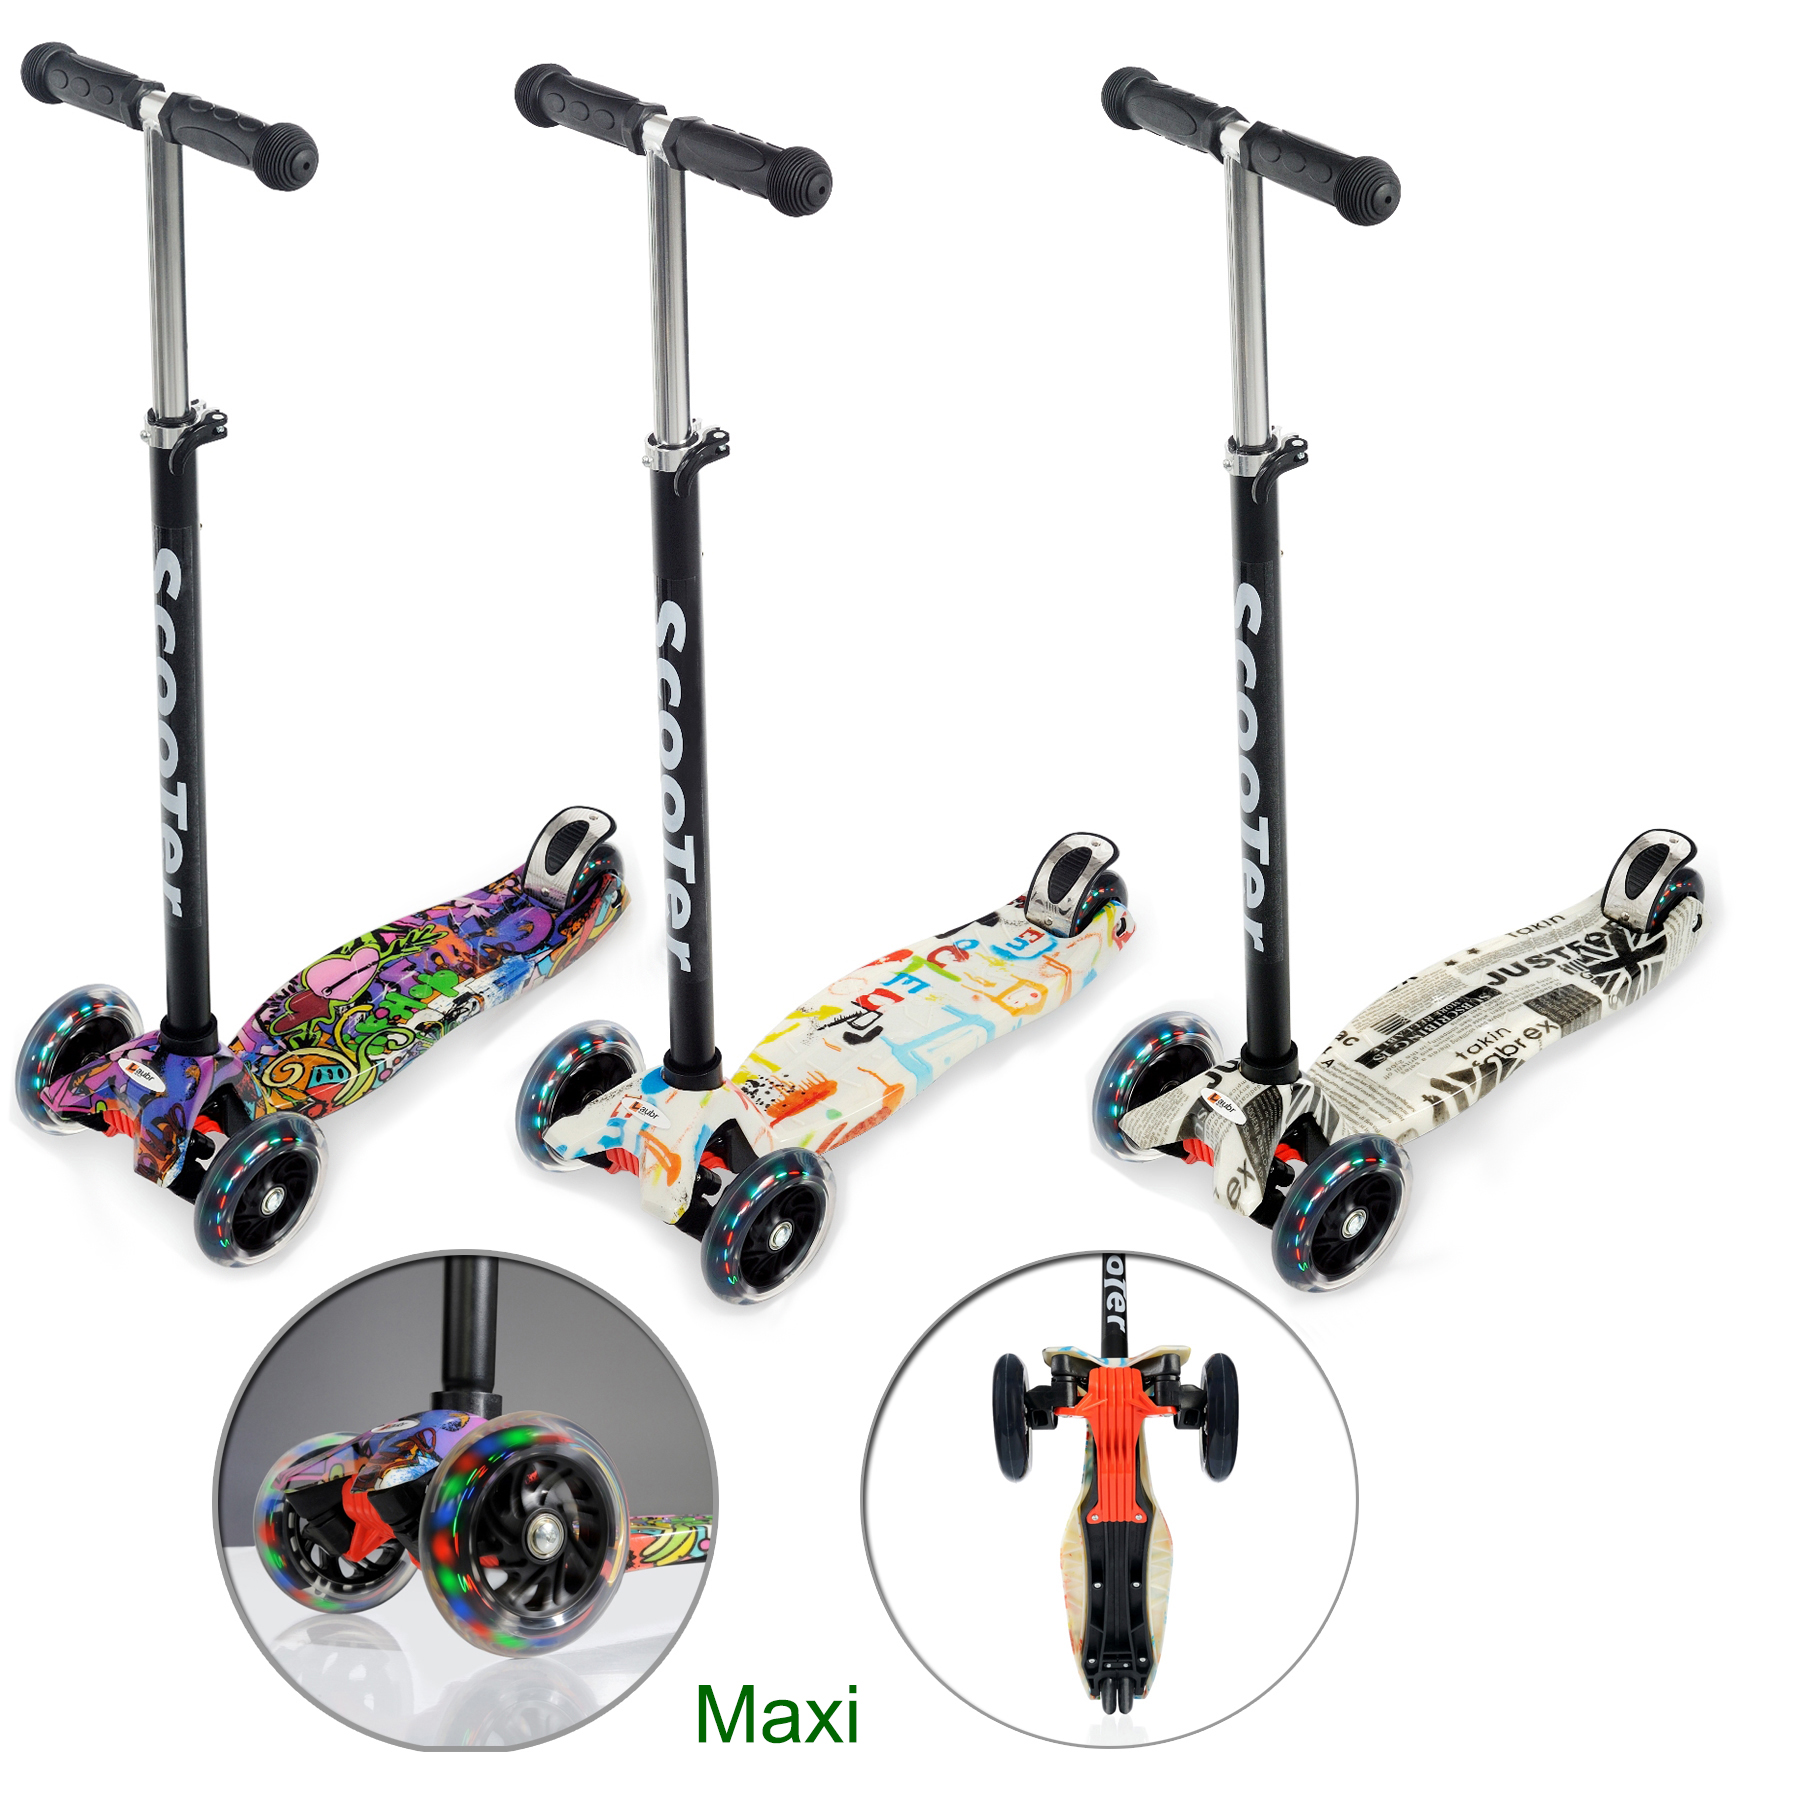 kinderroller cityroller kinder roller scooter tretroller dreirad klapproller ebay. Black Bedroom Furniture Sets. Home Design Ideas